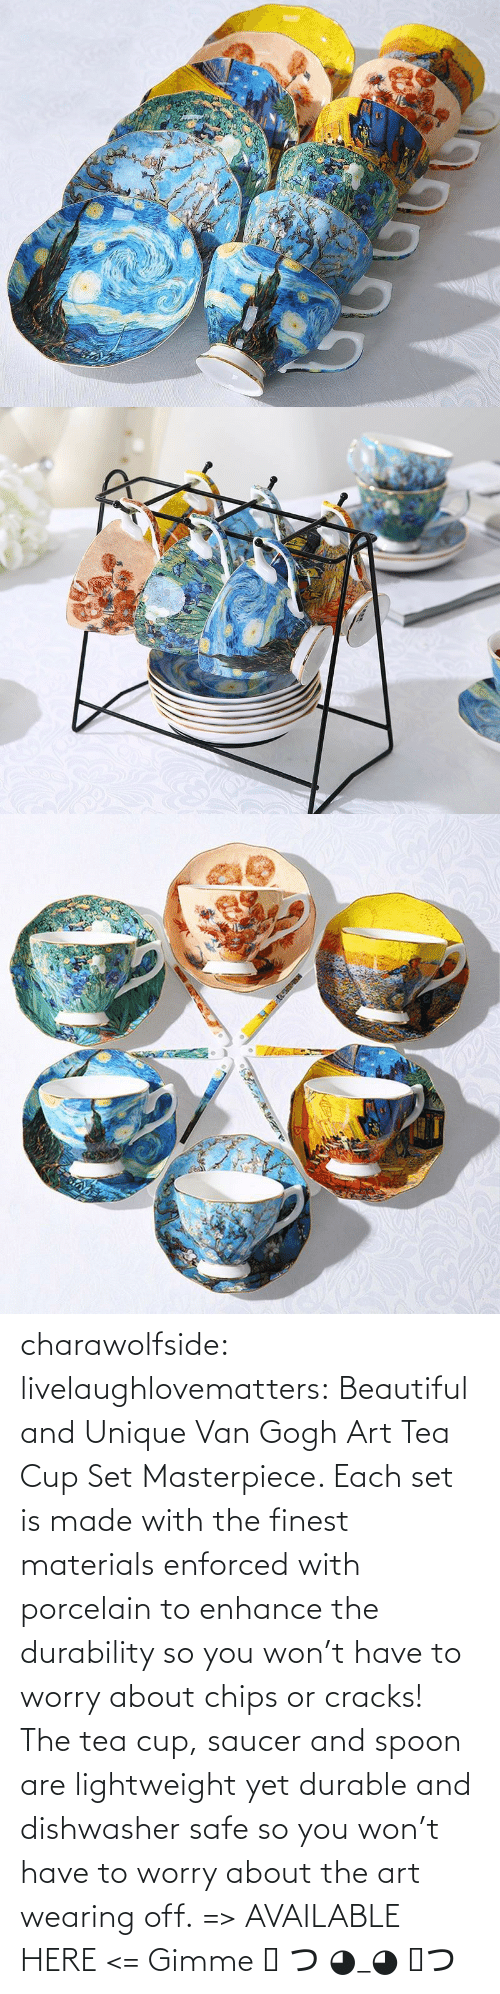 Lightweight: charawolfside: livelaughlovematters:  Beautiful and Unique Van Gogh Art Tea Cup Set Masterpiece. Each set is made with the finest materials enforced with porcelain to enhance the durability so you won't have to worry about chips or cracks! The tea cup, saucer and spoon are lightweight yet durable and dishwasher safe so you won't have to worry about the art wearing off. => AVAILABLE HERE <=    Gimme ༼ つ ◕_◕ ༽つ